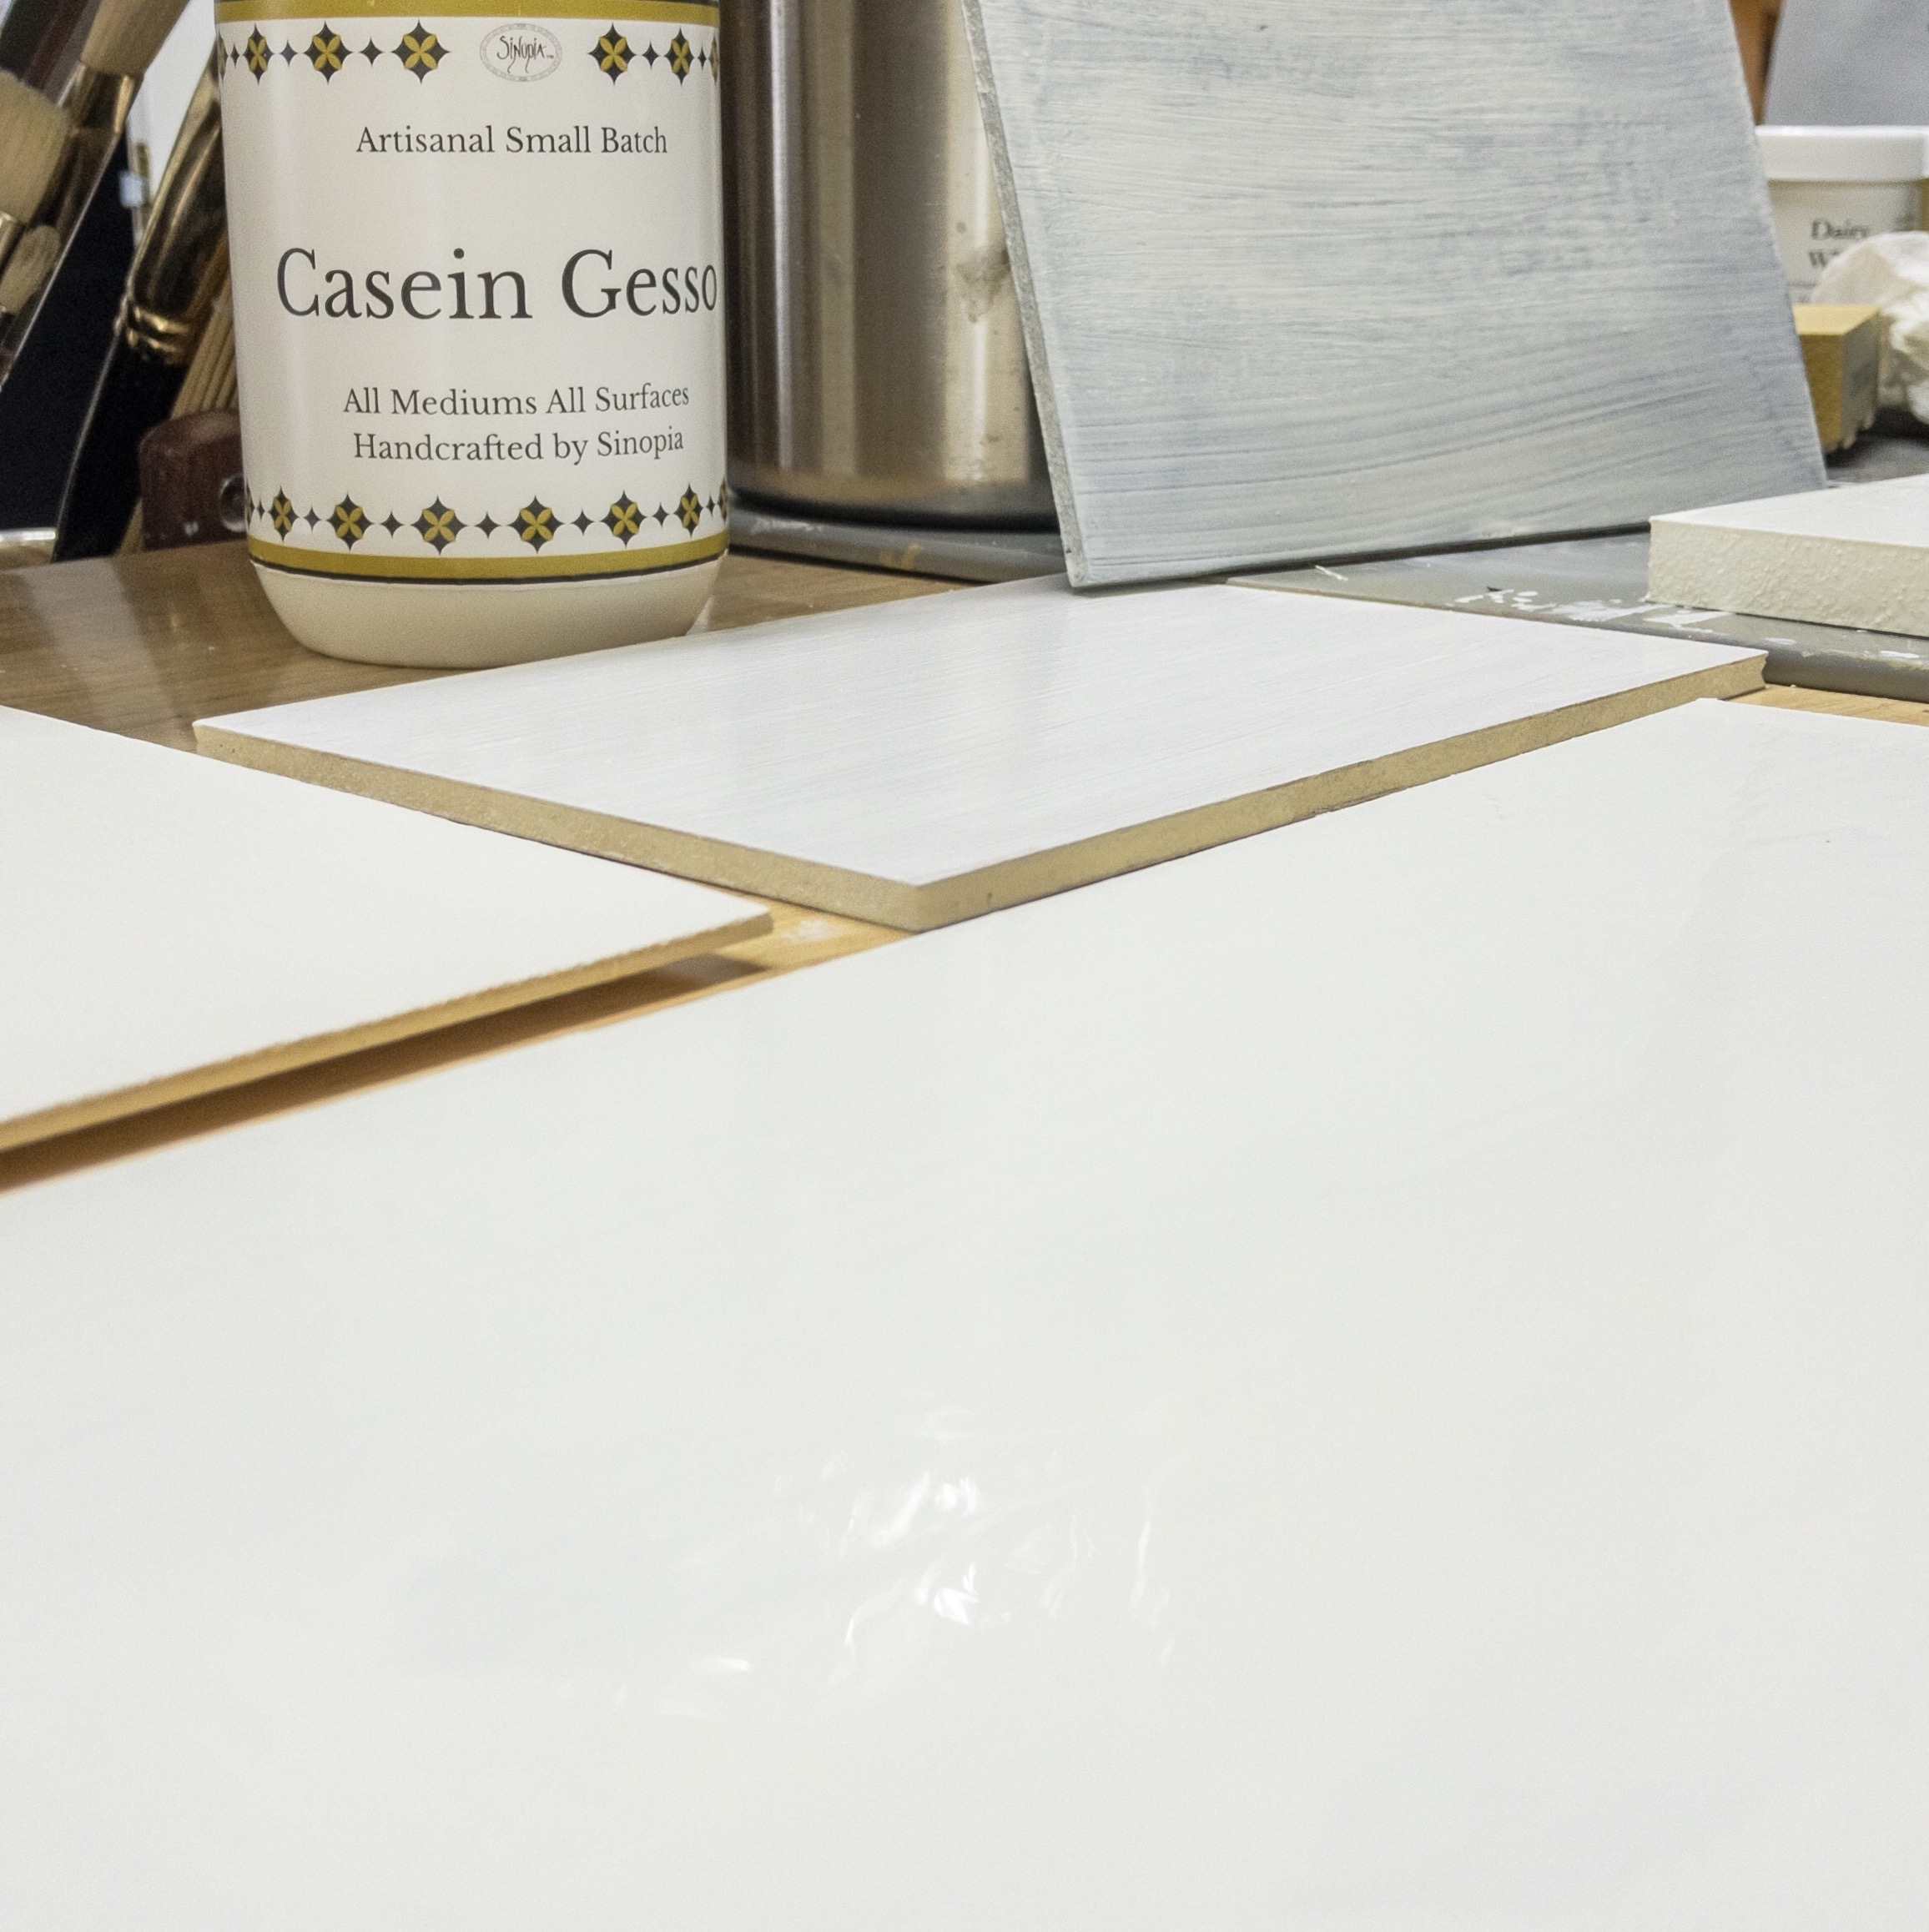 Casein gesso applied to different substrates. The black foam core panel (top right) demonstrates this casein gesso's translucency. At least two coats will be required for a full coverage.